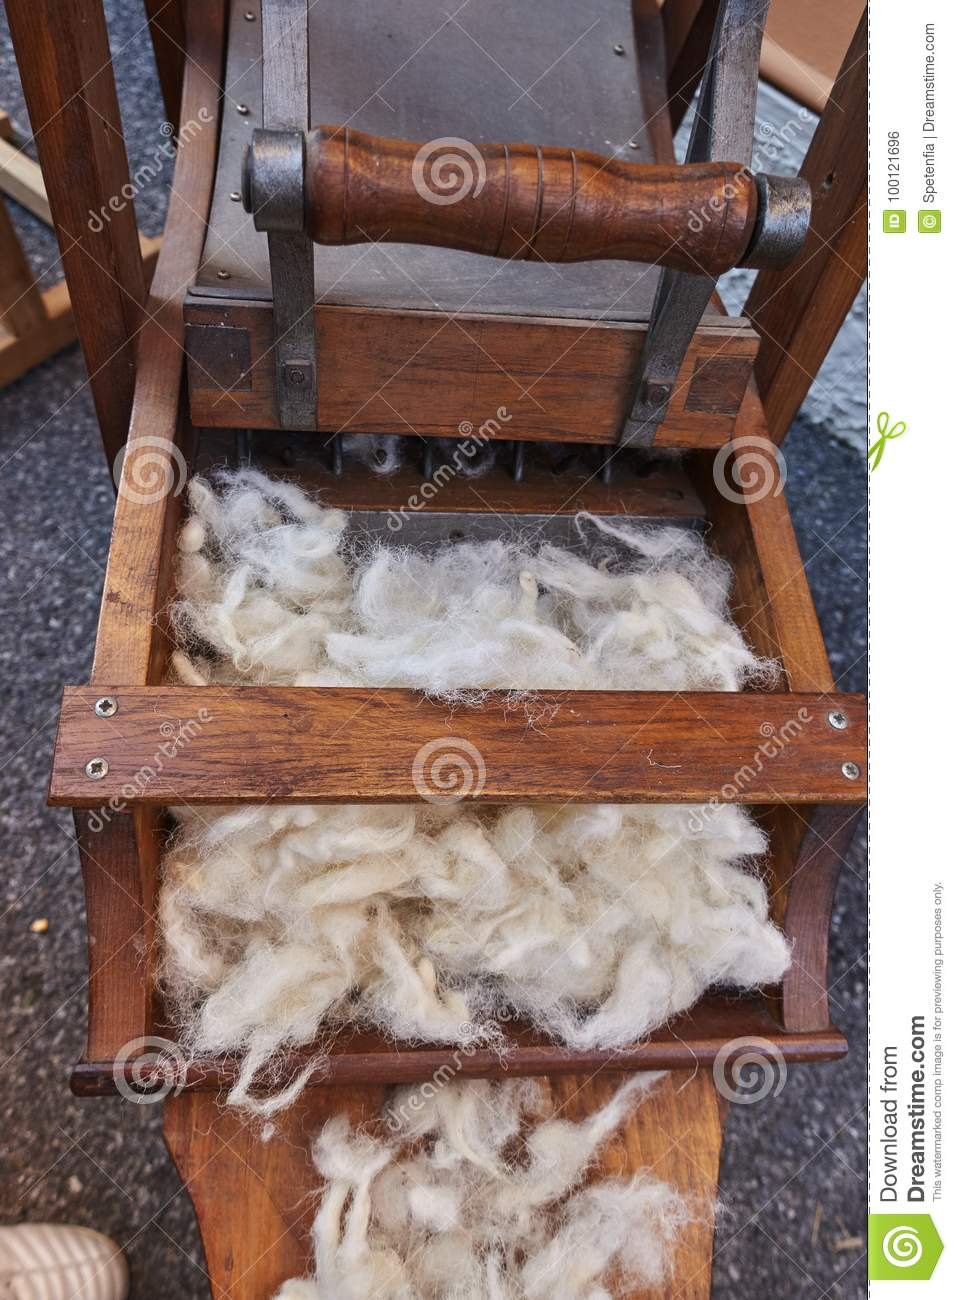 Wool carding stock photo  Image of card, vintage, equipment